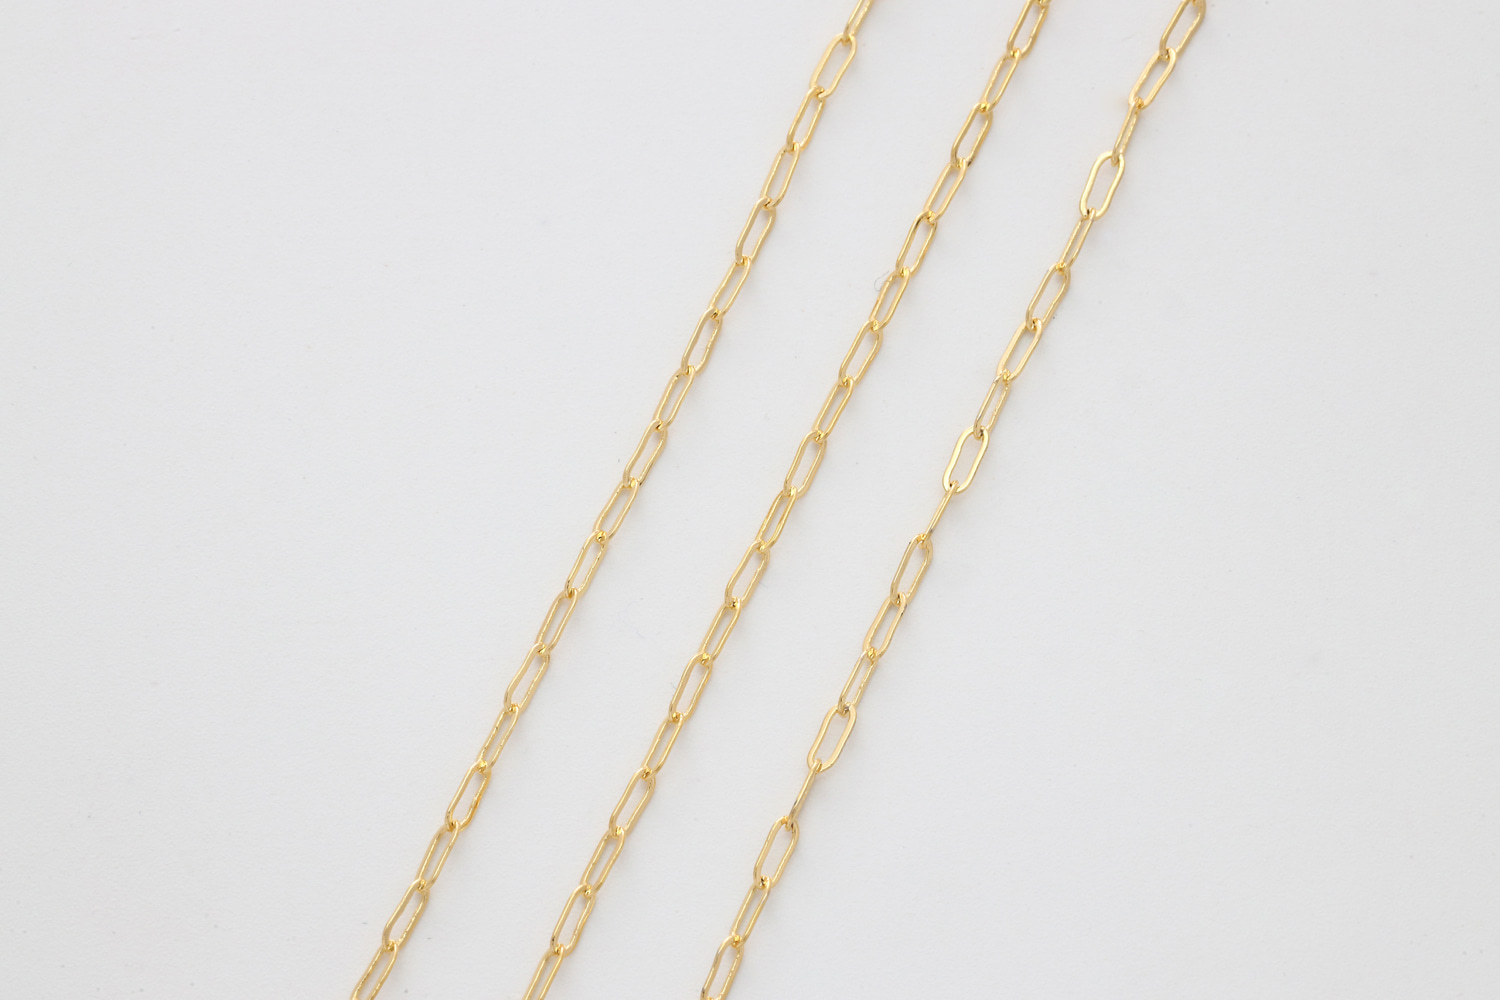 [CJ05-13] Rectangle link chain, Outer 4.3x1.7mm, Red brass, Nickel free, Anklet / Bracelet / Necklace chain, Jewelry making supplies, 1m